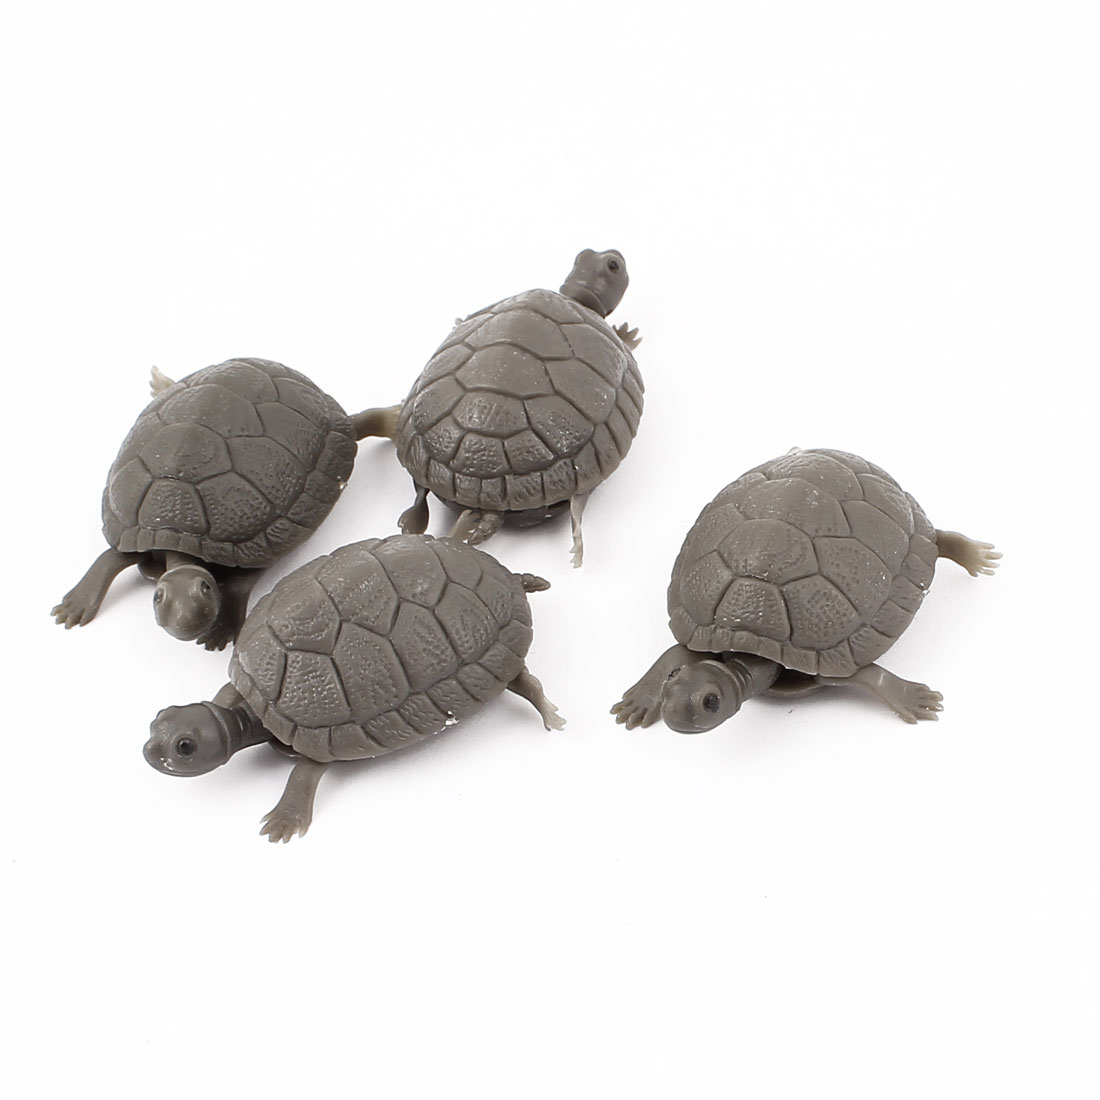 Aquarium Fish Tank Plastic Floating Artificial Tortoise Decor Ornament Gray 4Pcs